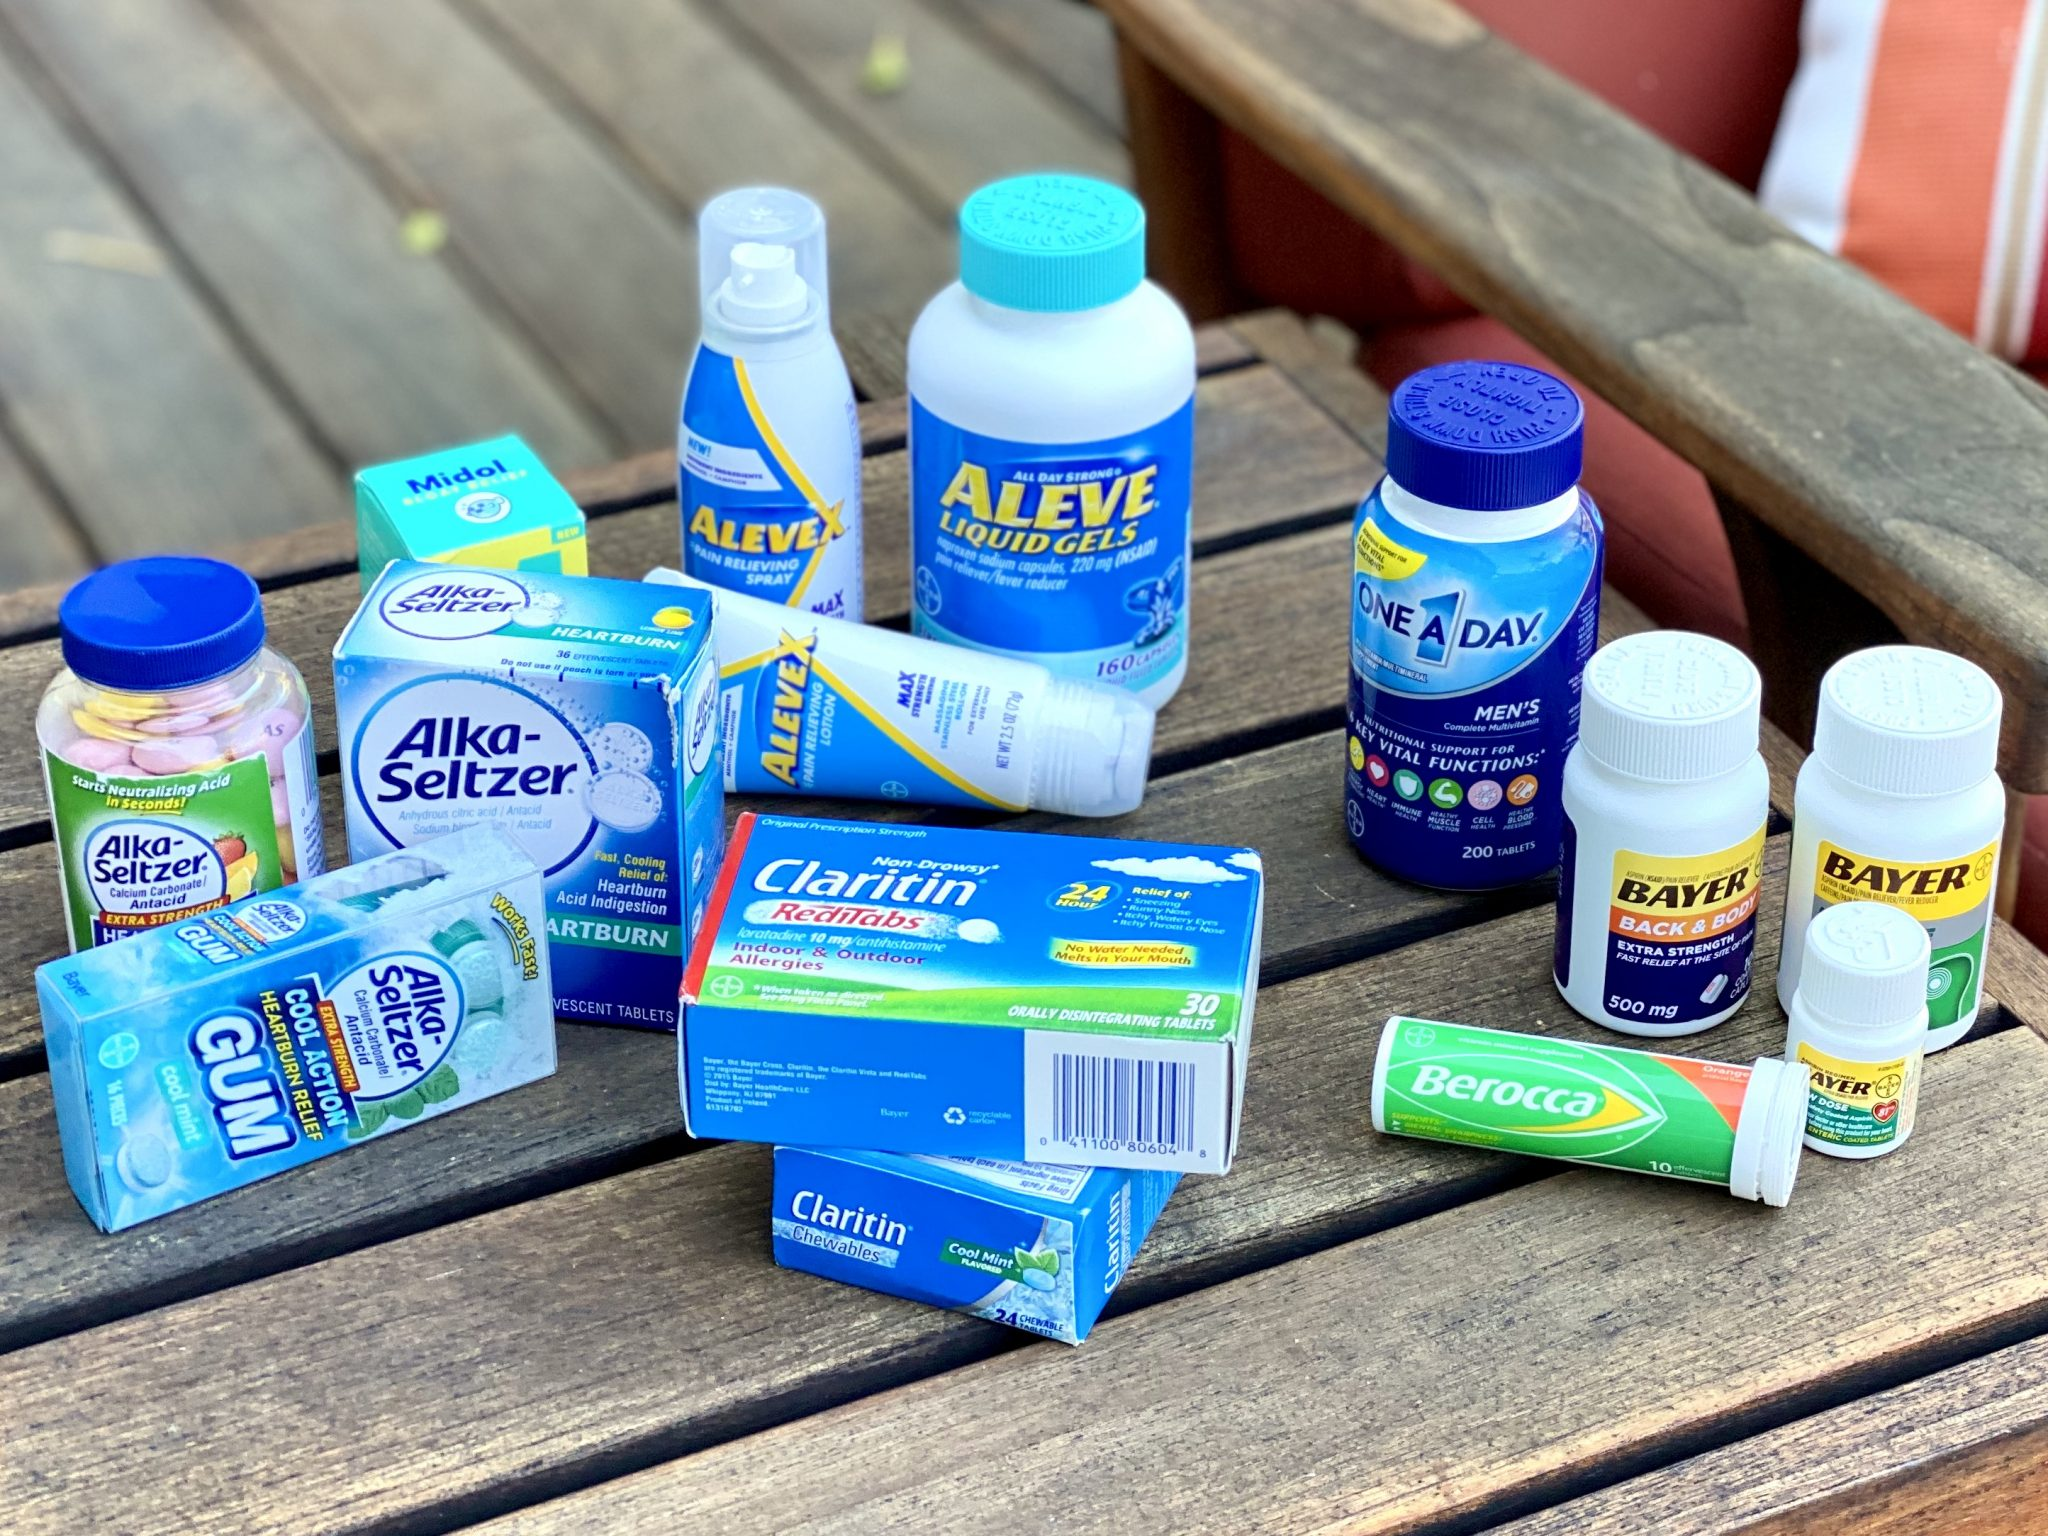 assortment of Bayer products